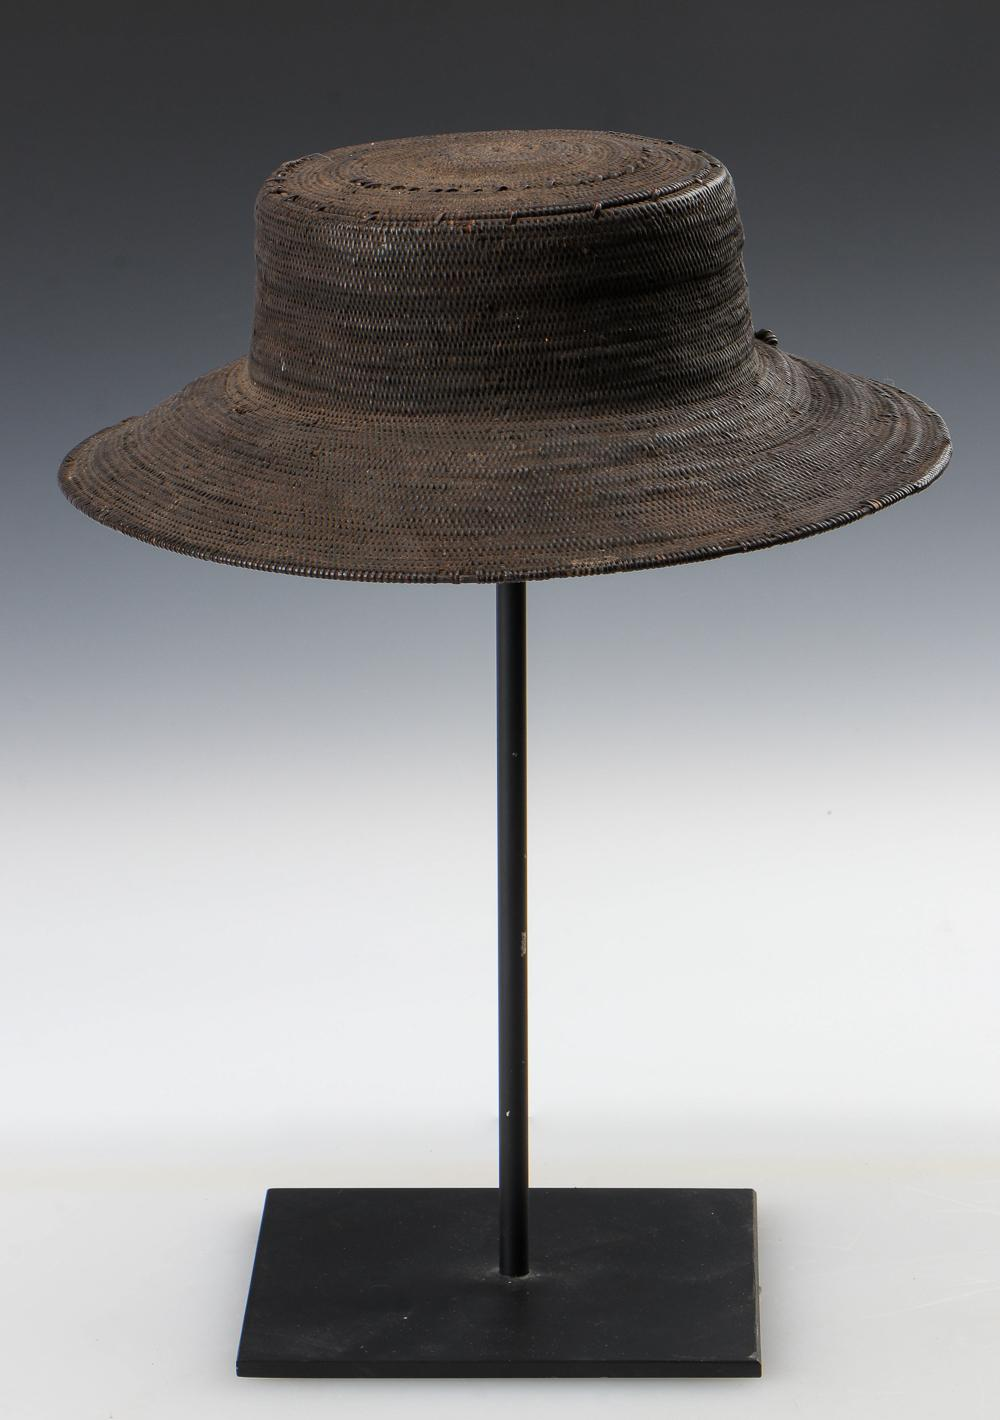 Timor Plant Fiber Hat, Early/Mid 20th C.